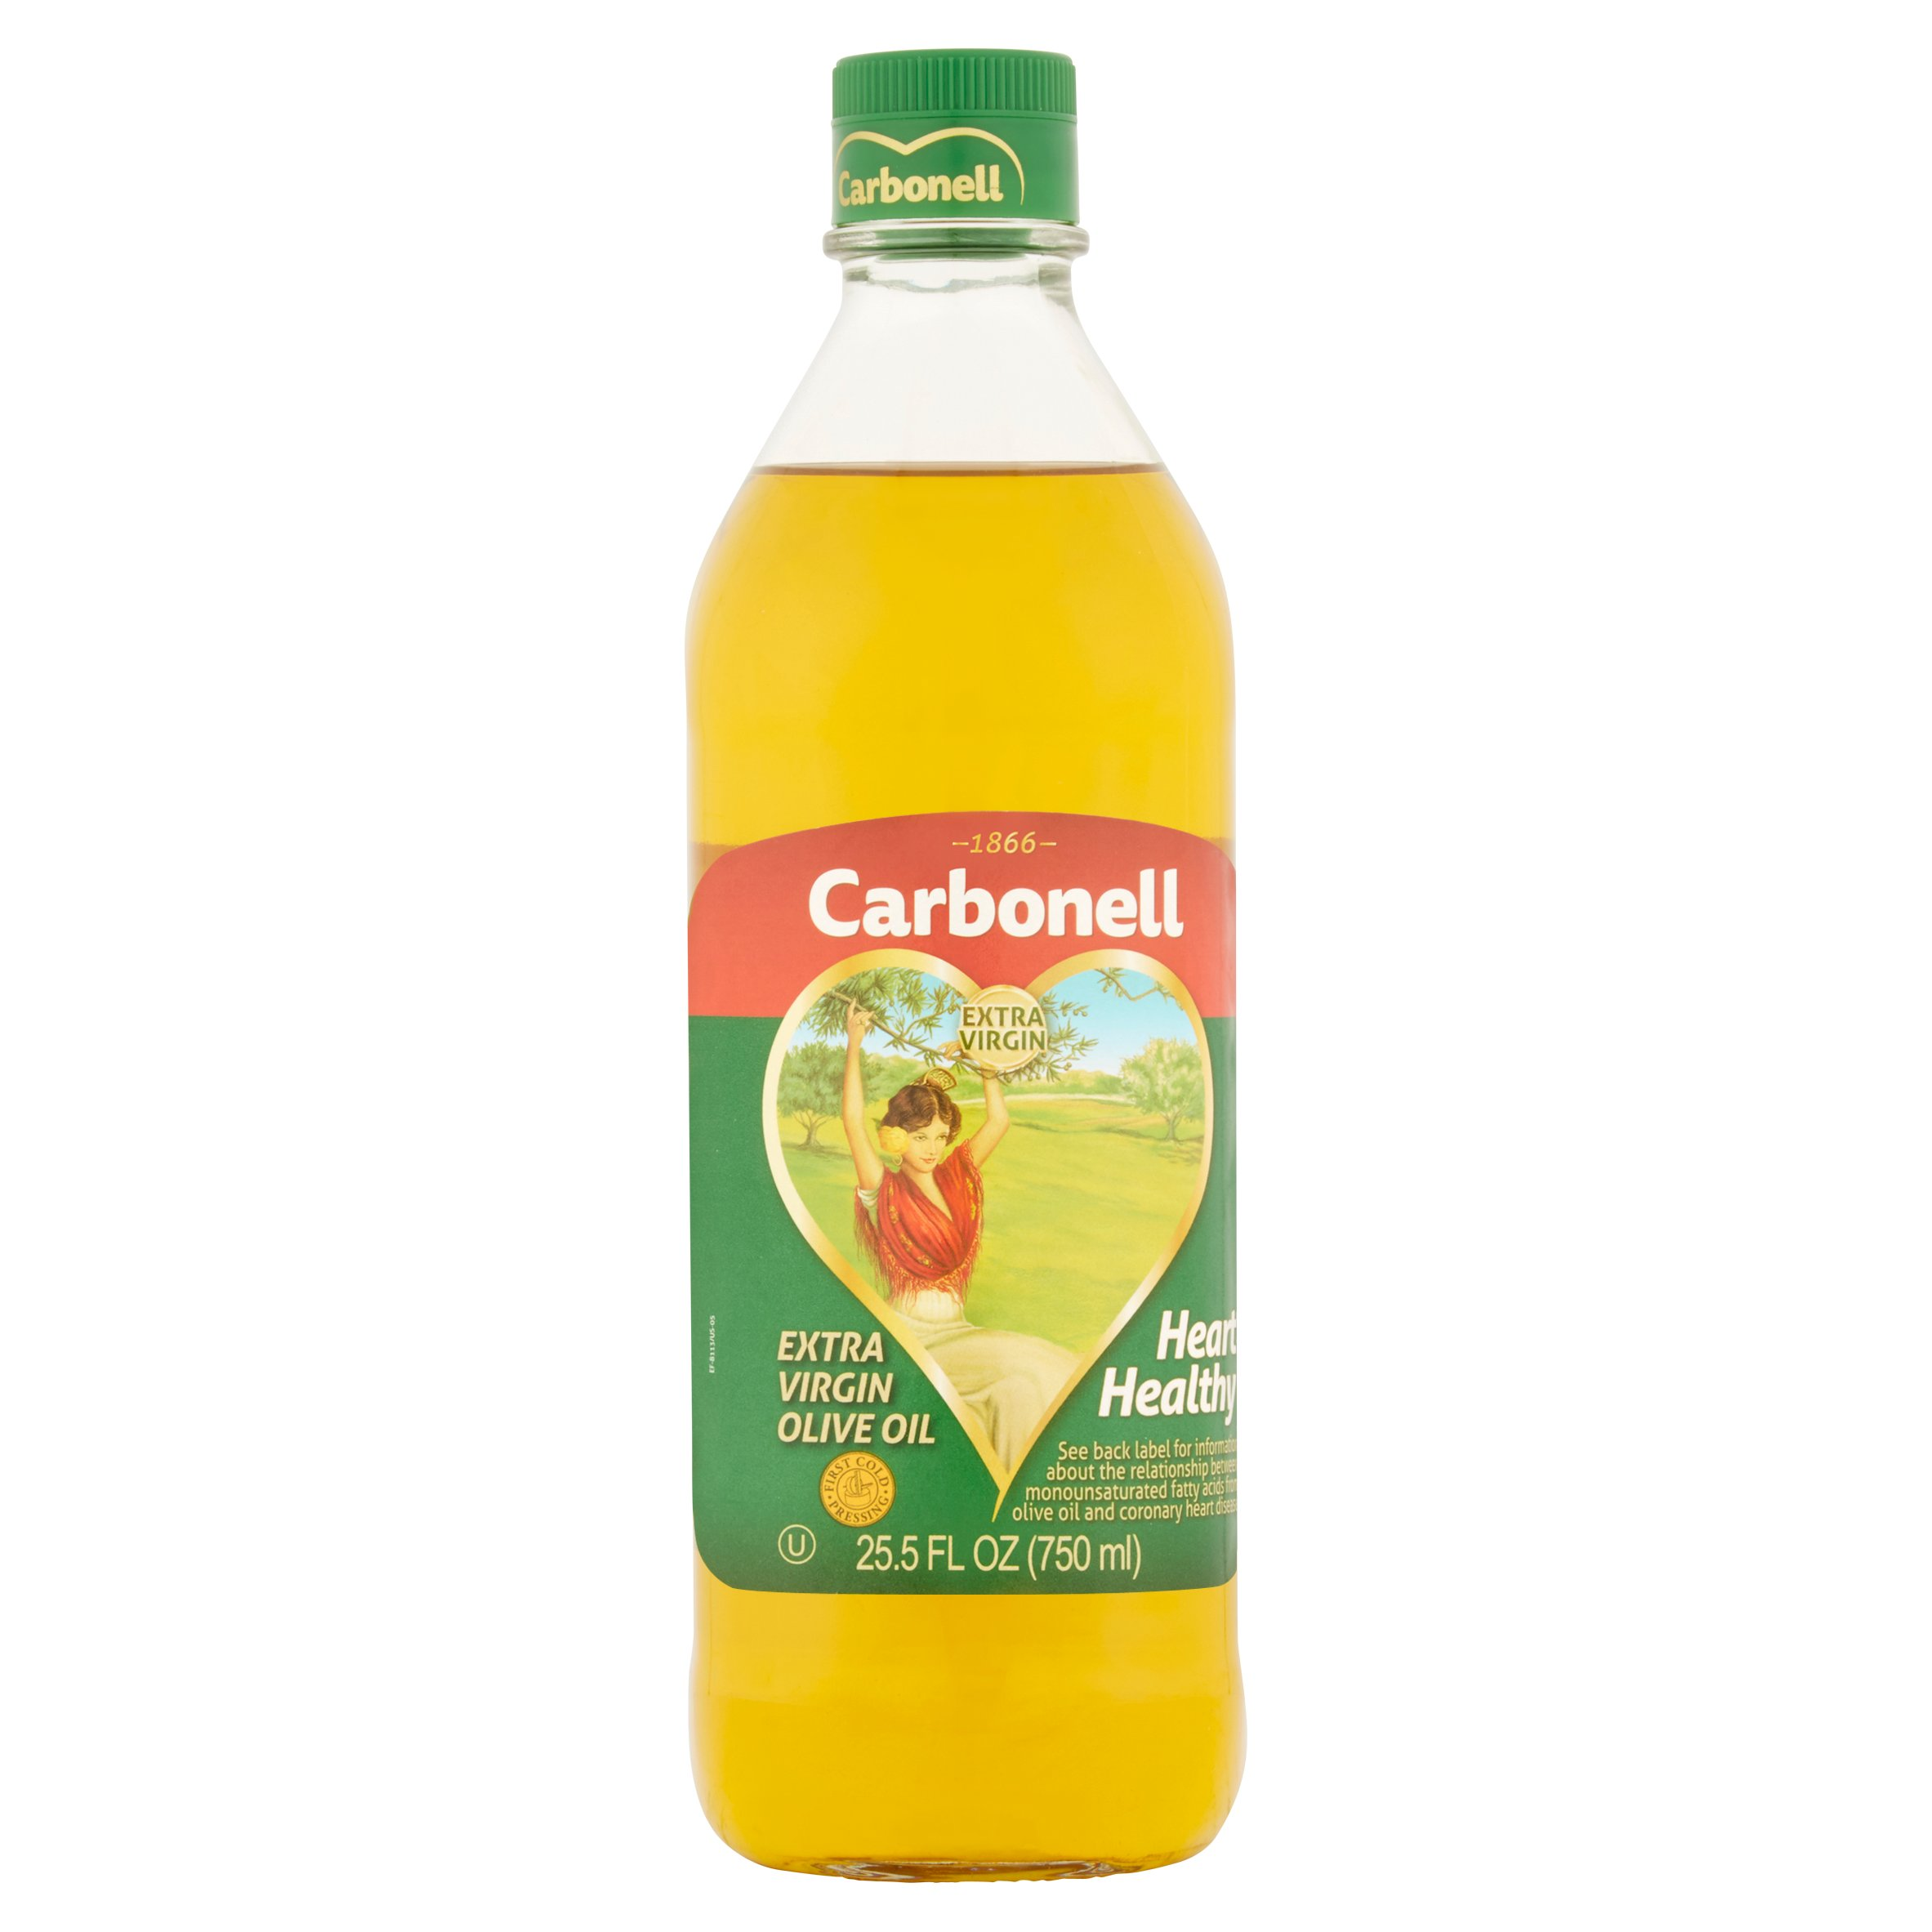 Carbonell Extra Virgin Olive Oil, 25.5 fl oz by Deoleo USA, Inc.